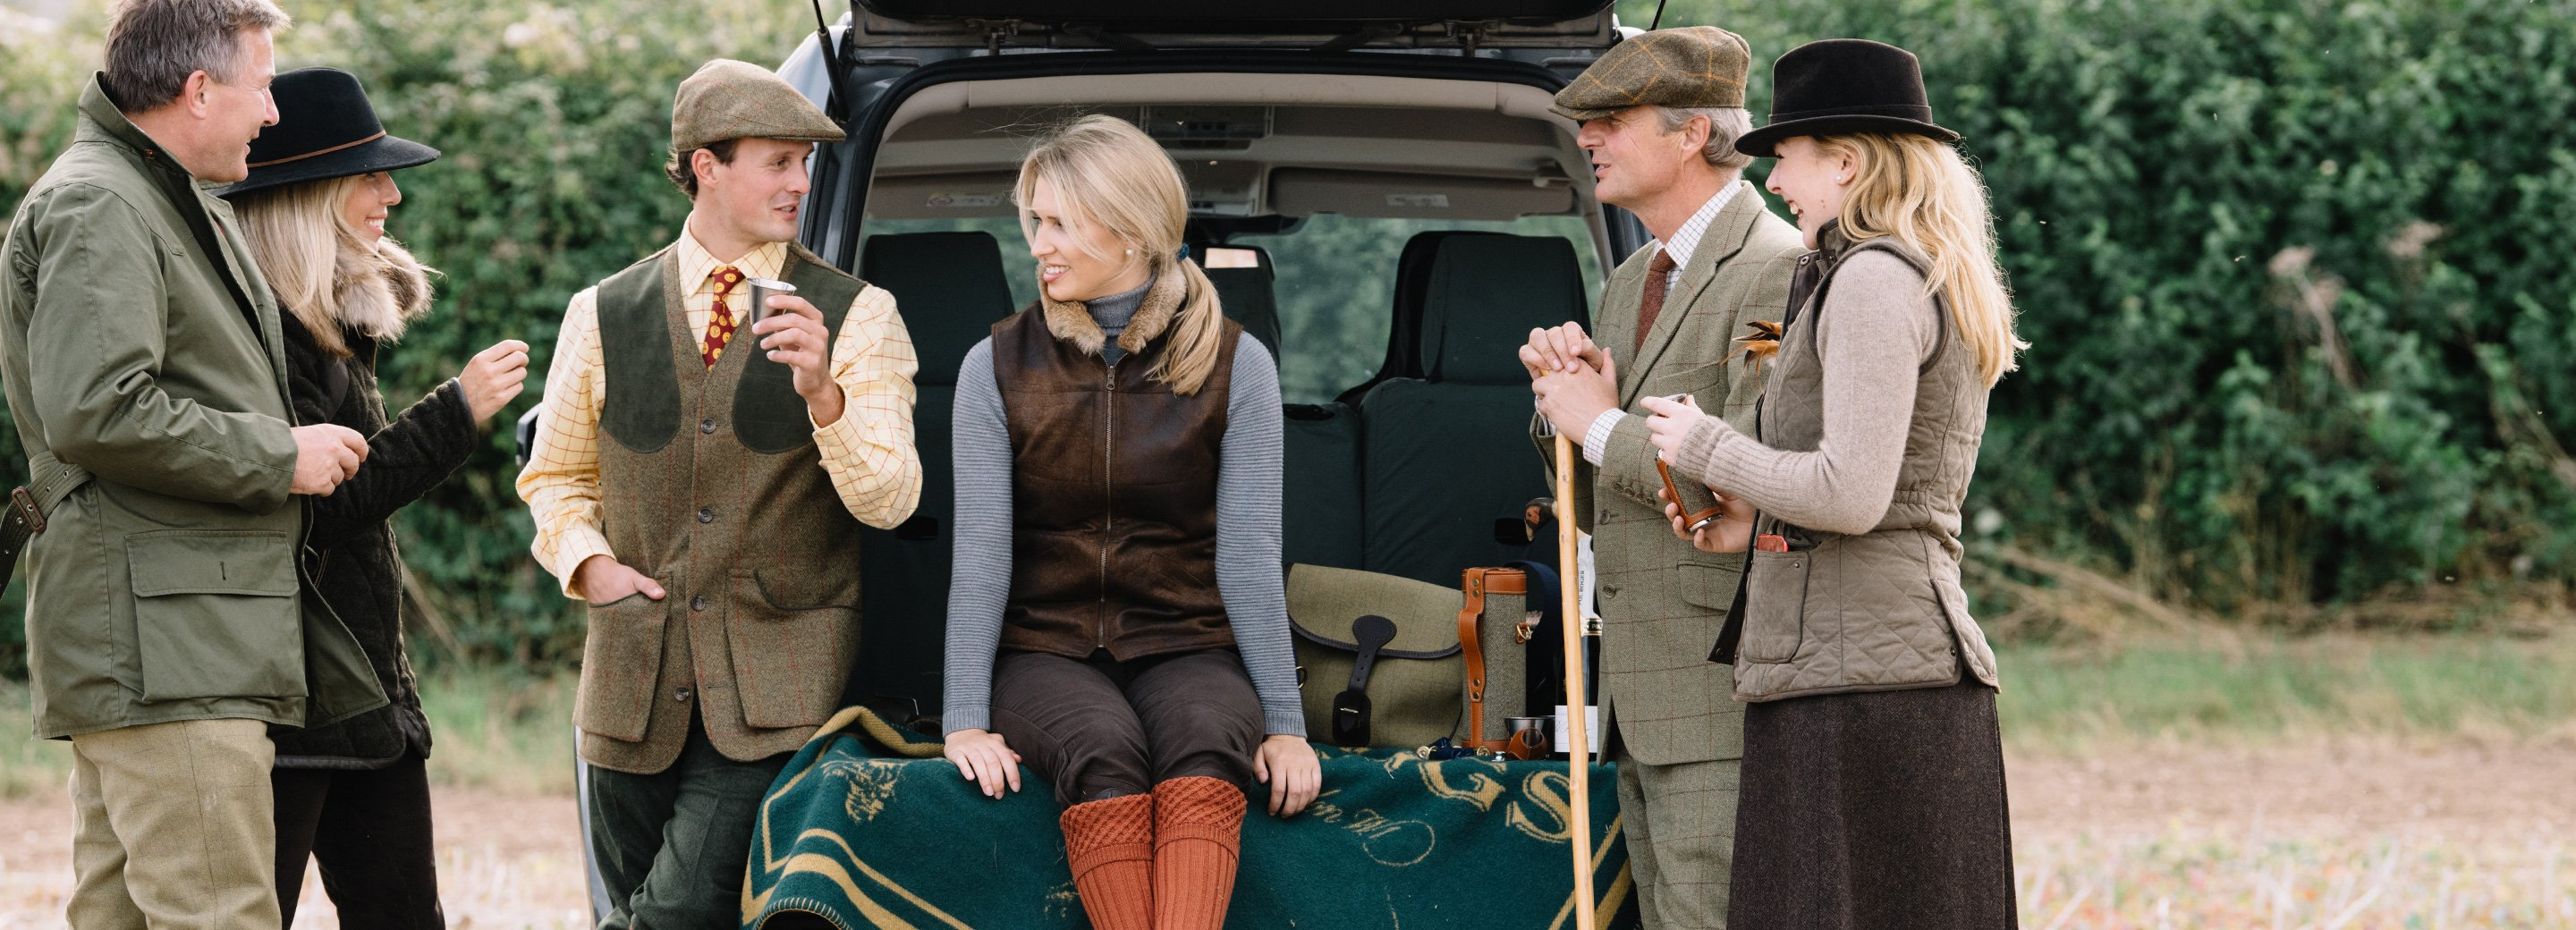 What to wear to a point to point